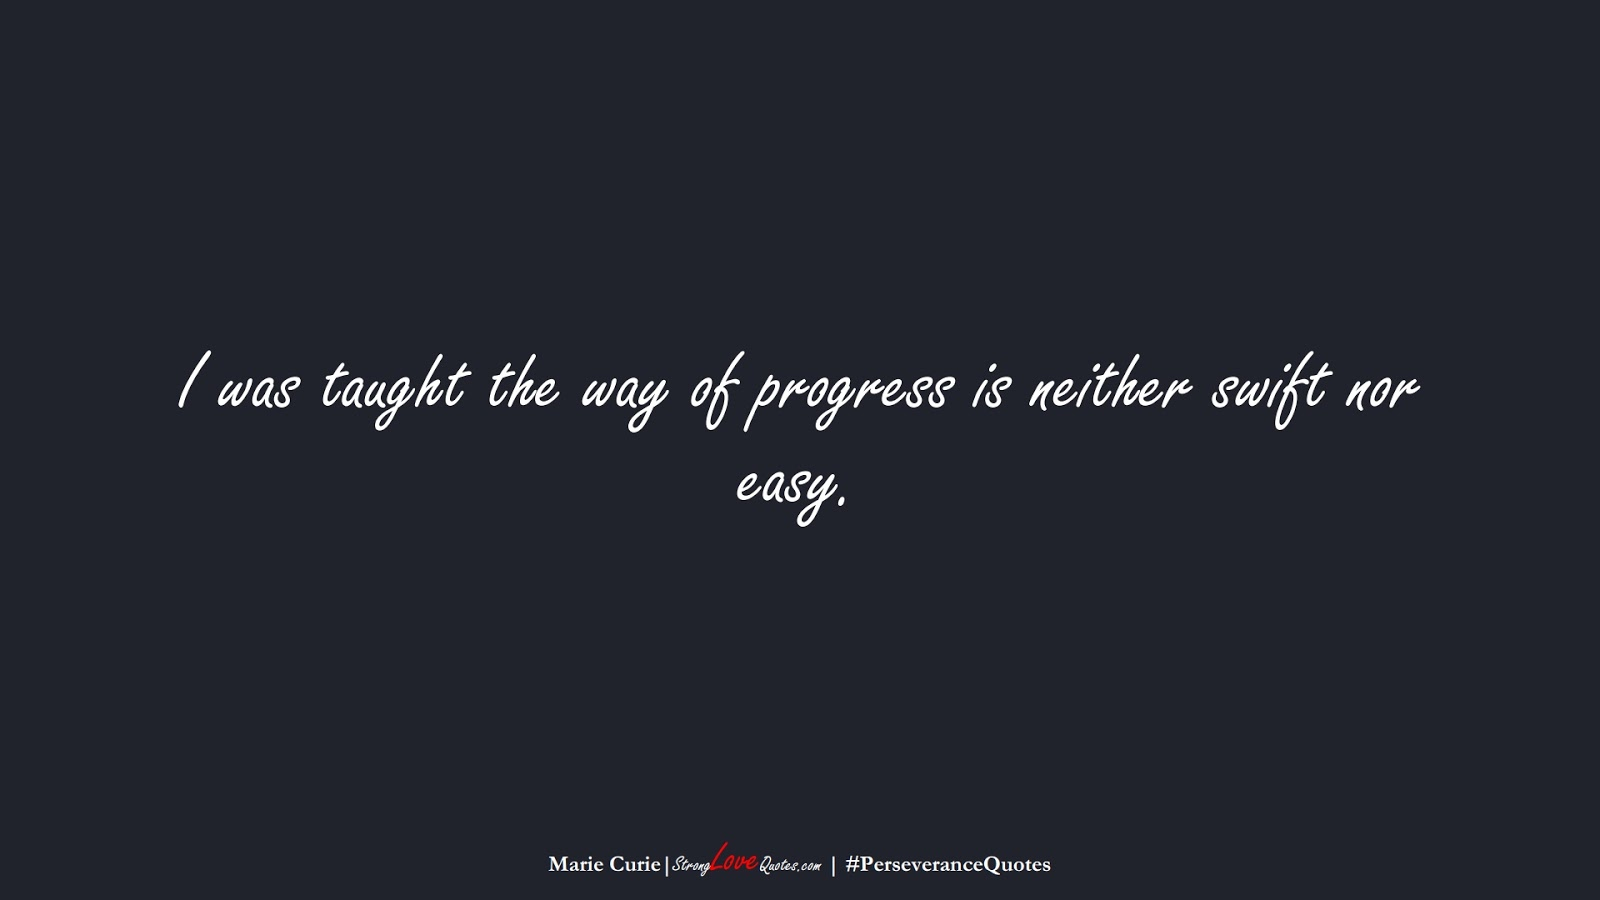 I was taught the way of progress is neither swift nor easy. (Marie Curie);  #PerseveranceQuotes